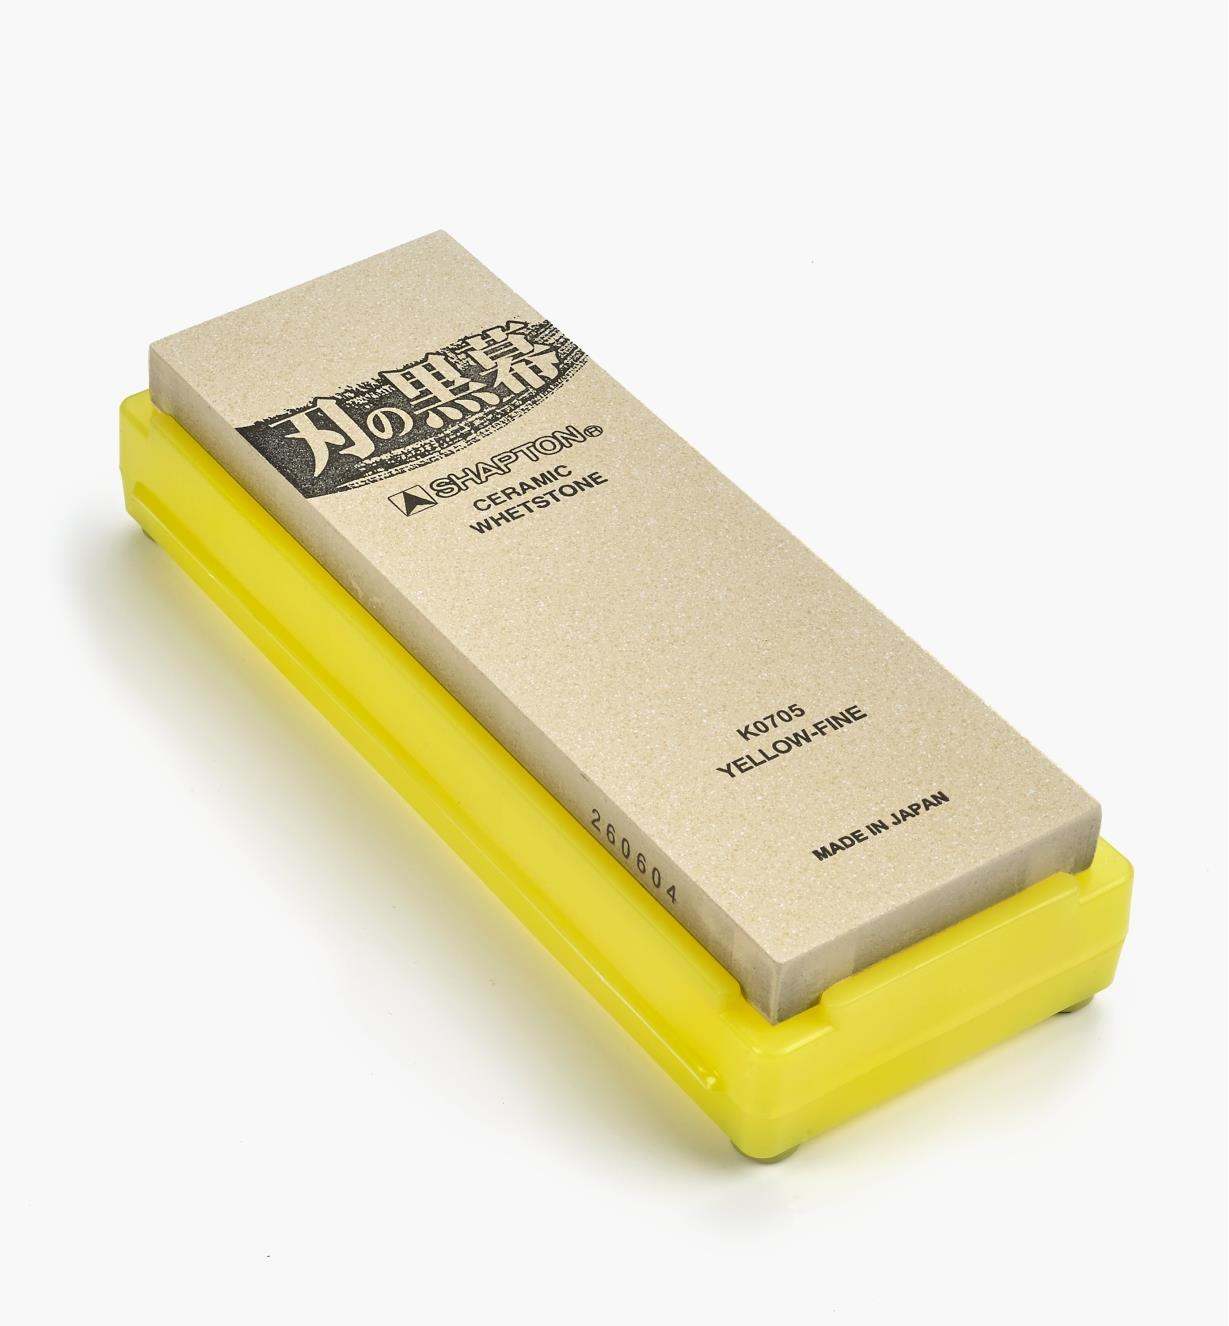 61M0109 - Shapton 12000x Yellow Ha-No-Kuromaku Ceramic Stone